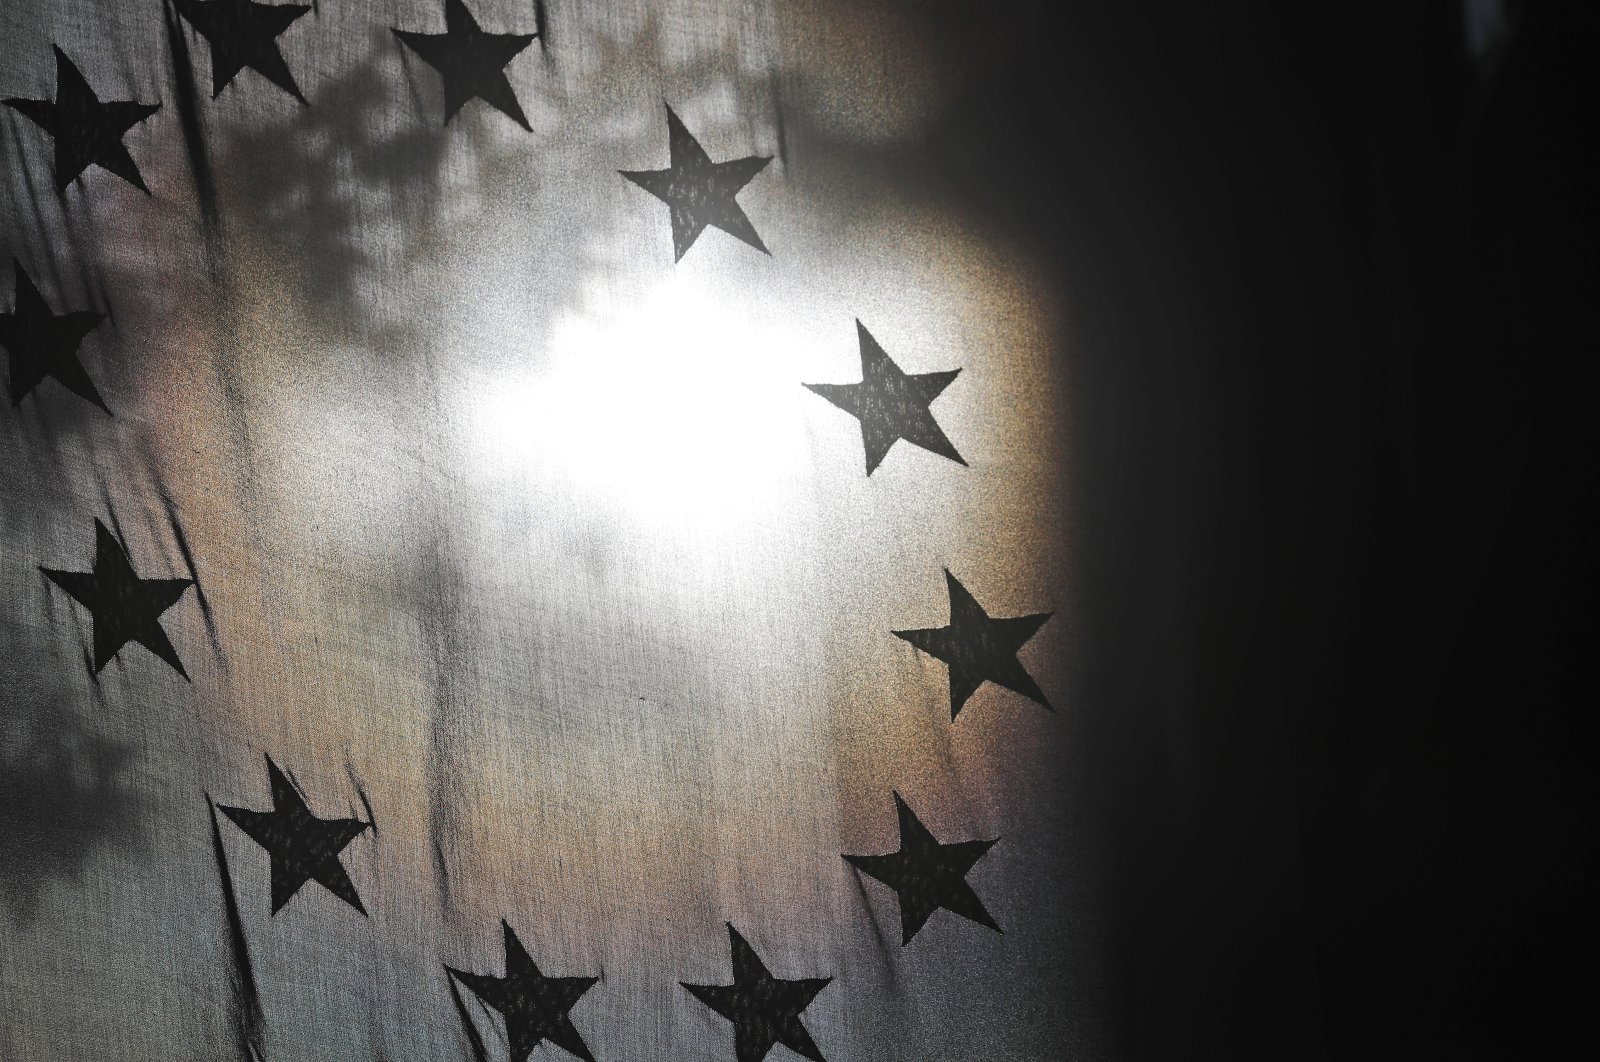 The stars of the EU flag are seen against the sun at the Europa House in London, Oct. 19, 2020. (AP Photo)